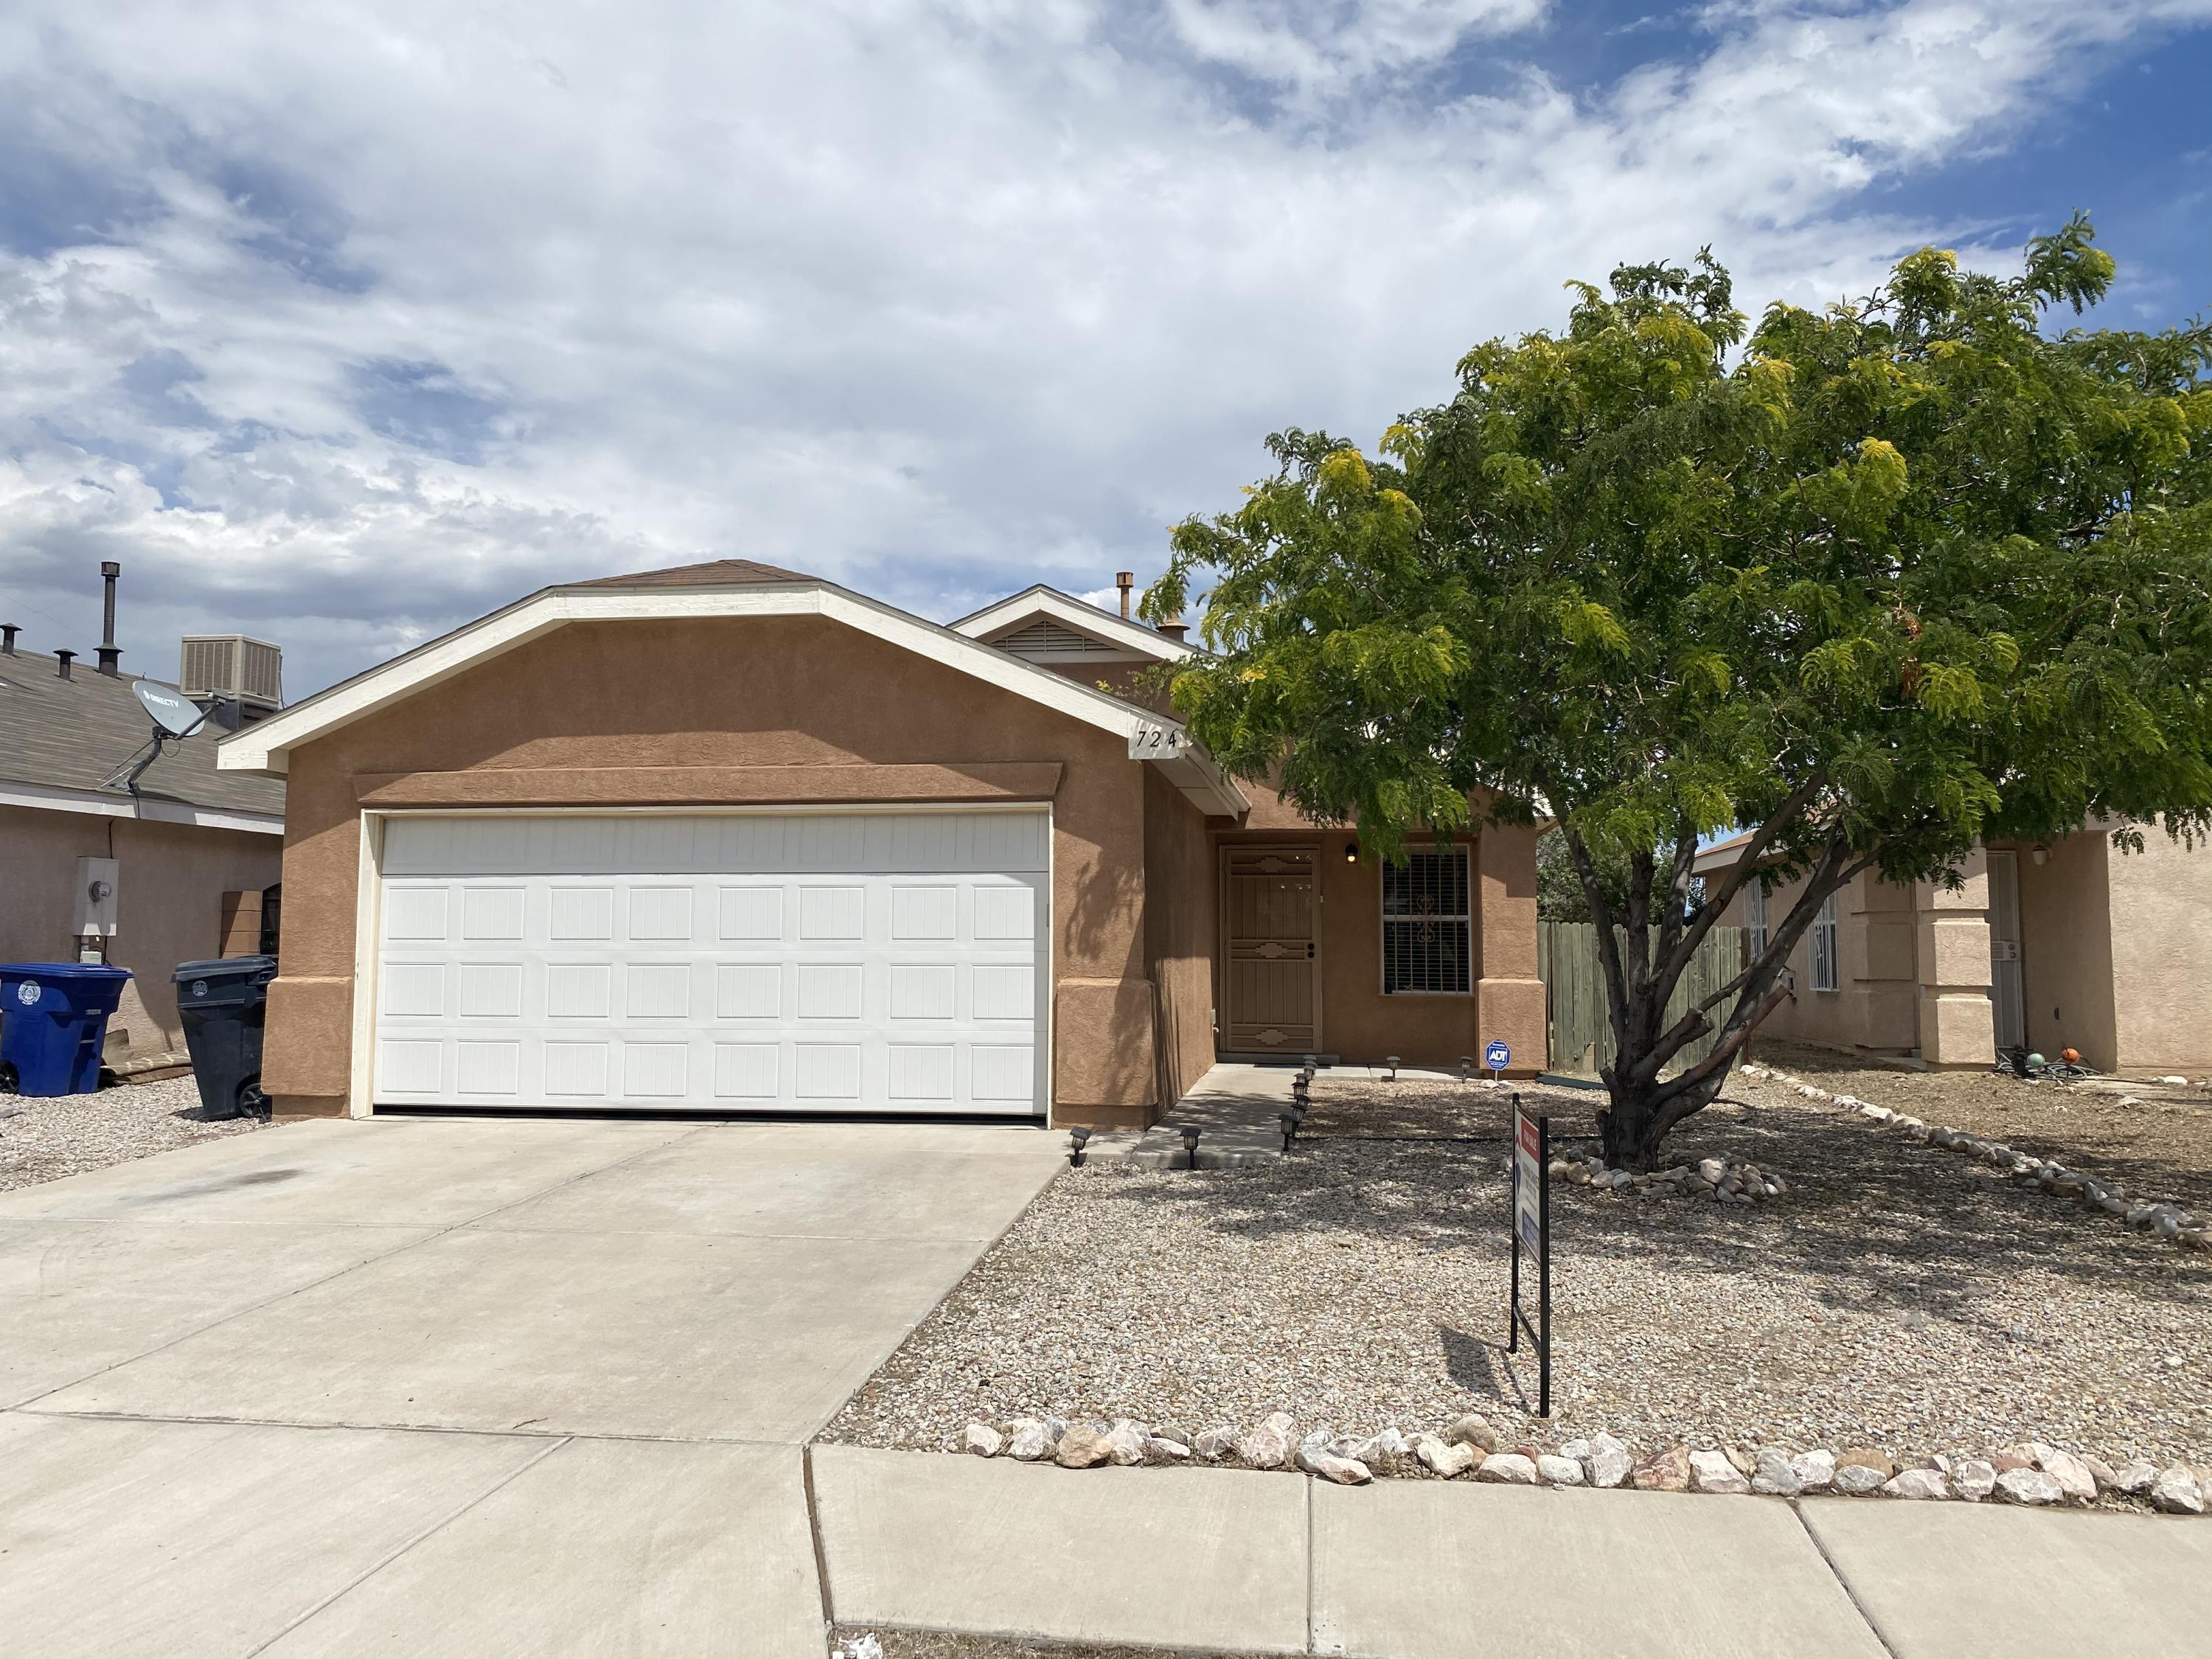 Beautiful property with a brand new roof and a transferable warranty looking for a new owner!  This house features a very livable floor plan with two spacious bedrooms and two full bathrooms.  Come take a look at this great property, it will not last long!